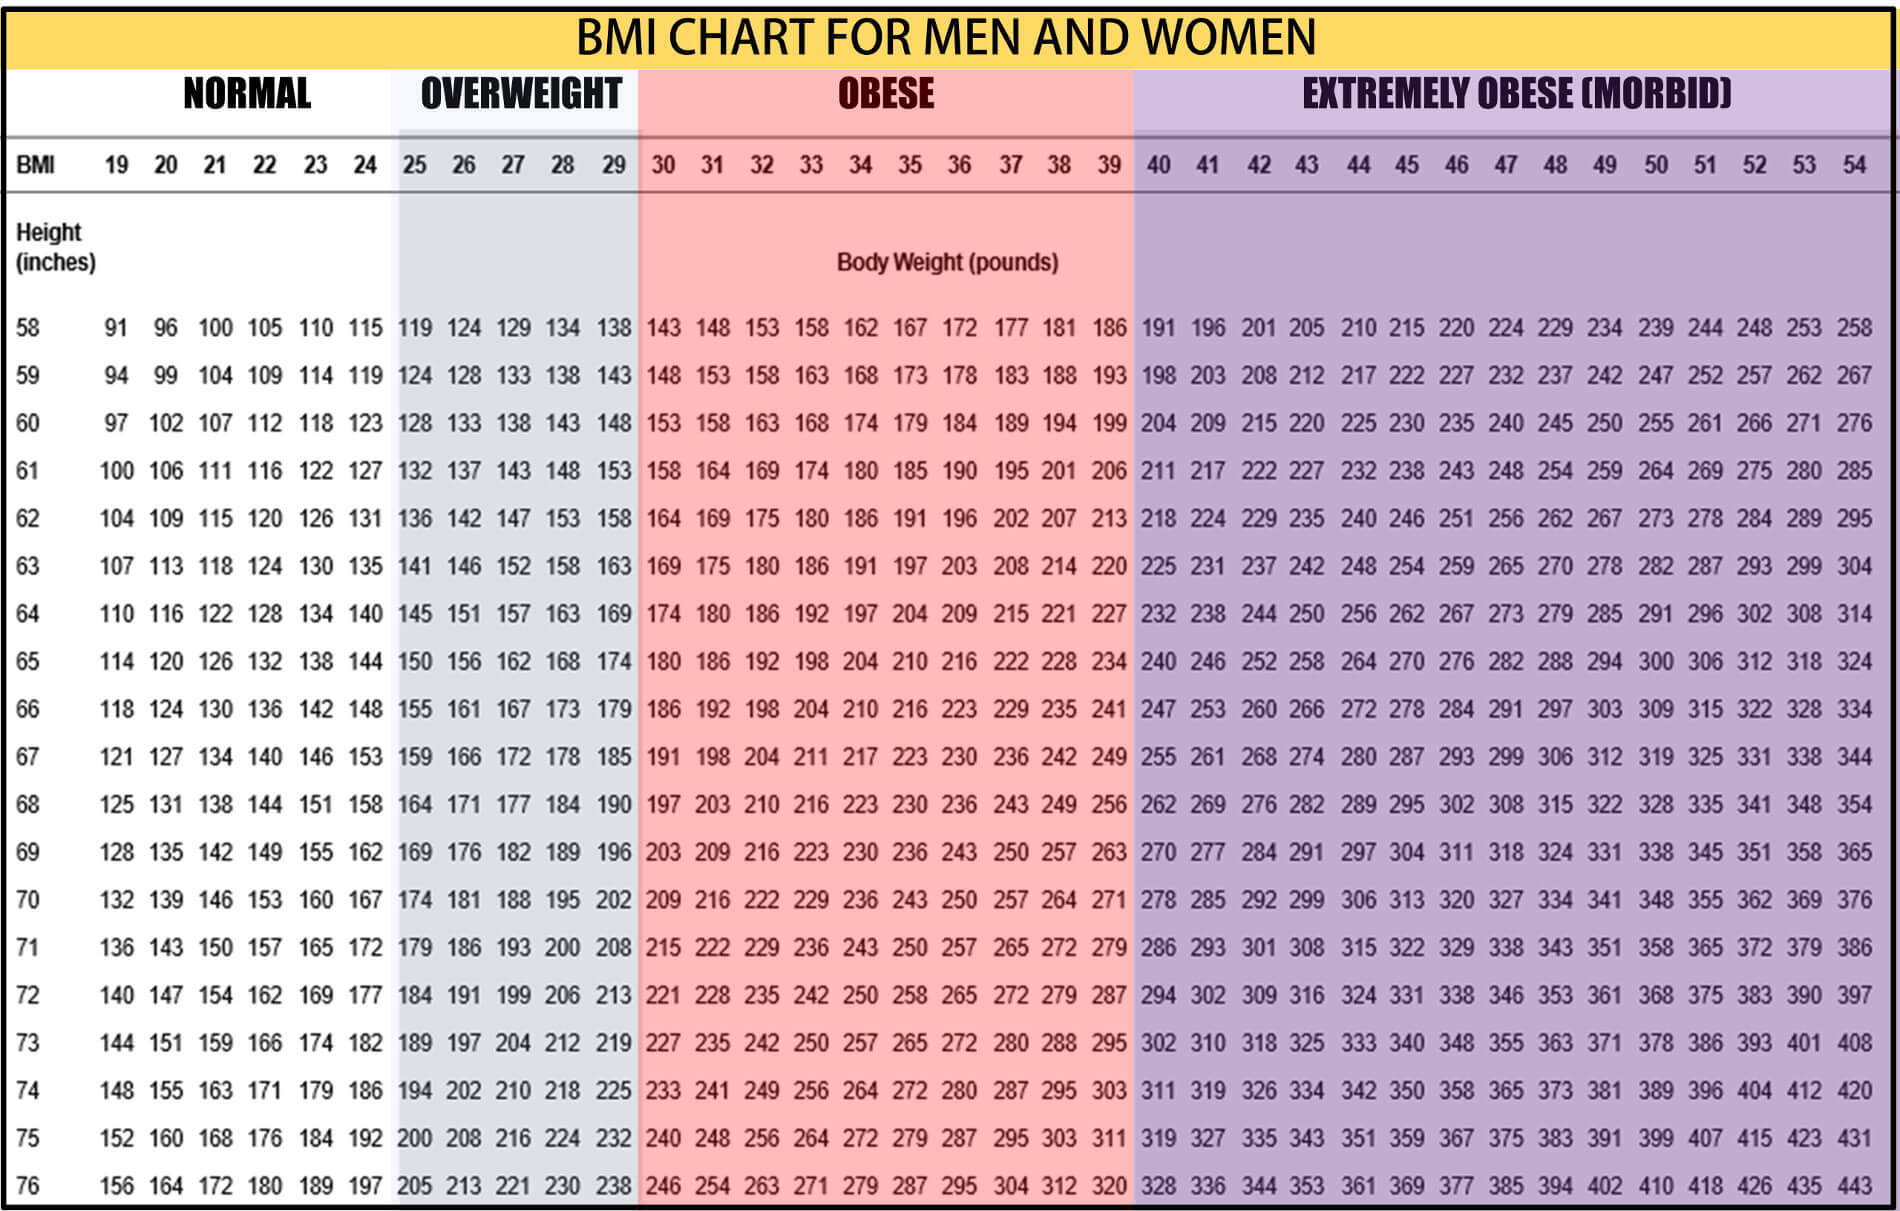 They Promoting Bmi As A Simple Rule Of Thumb That Any Individual Of A  Particular Height